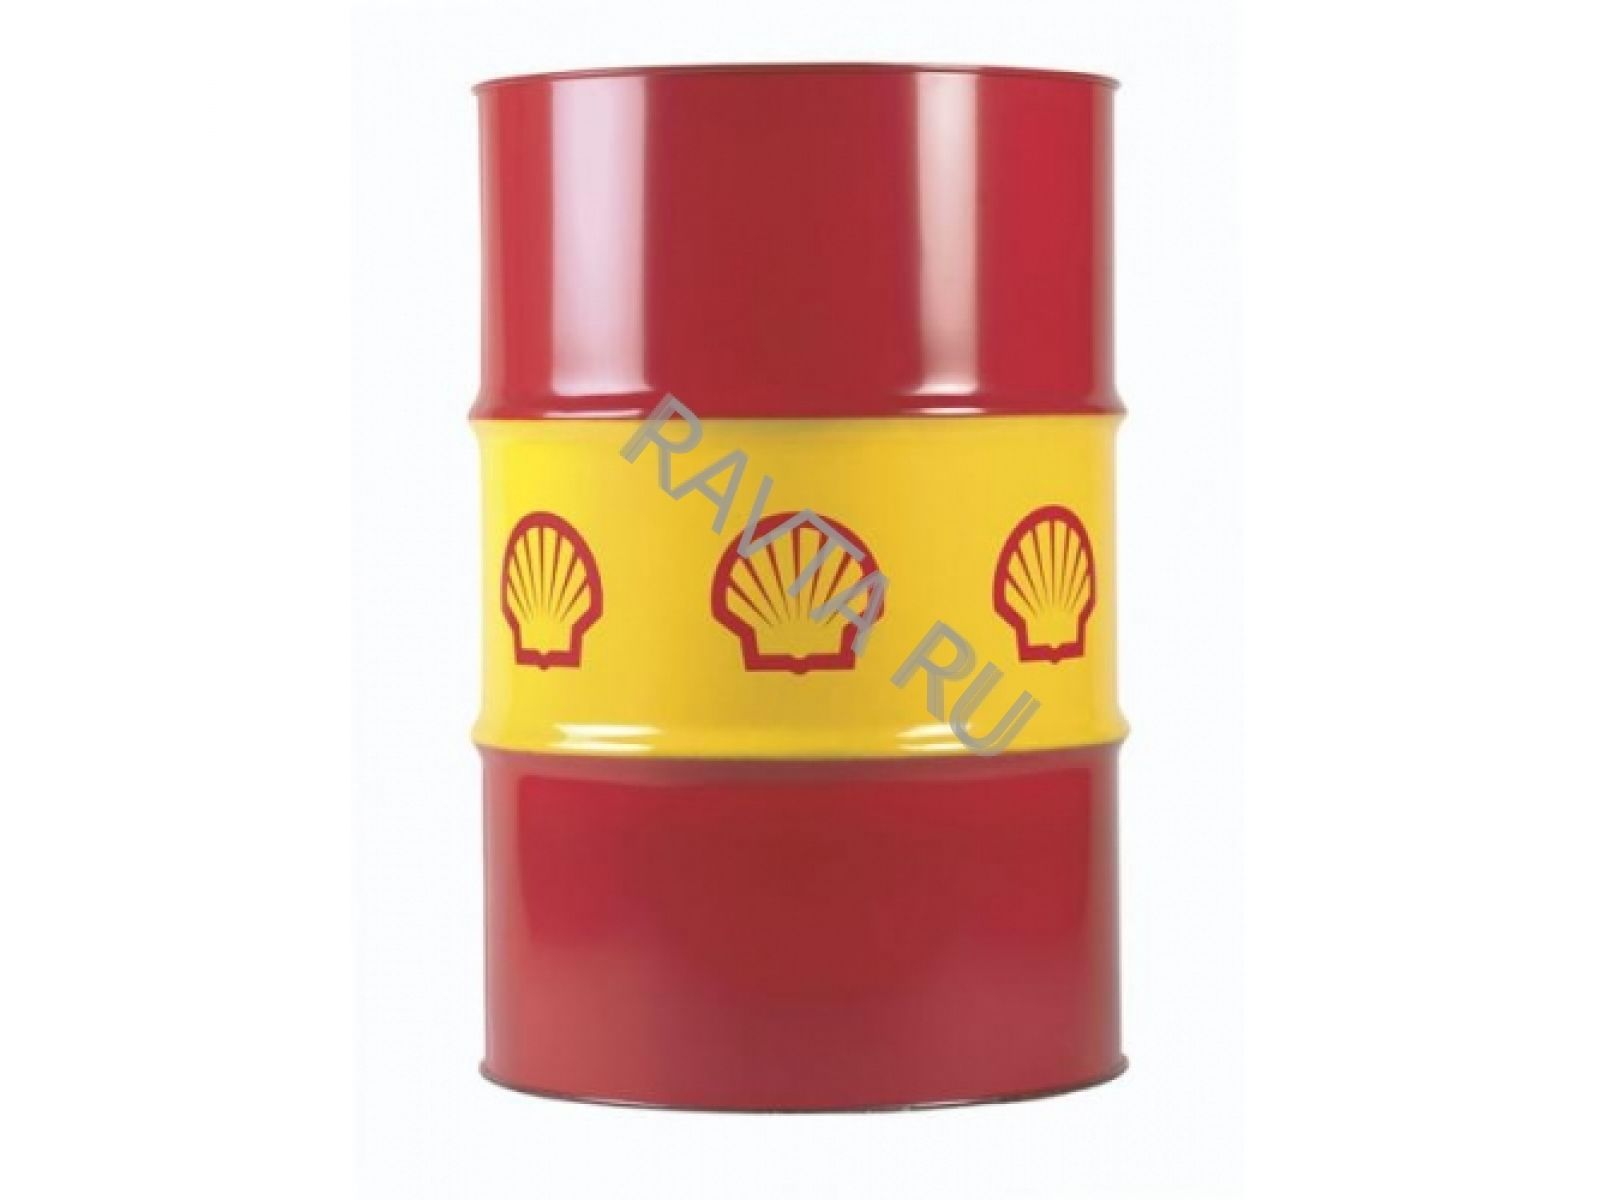 Масло Shell Spirax S4 CX 30 (209л) от Ravta